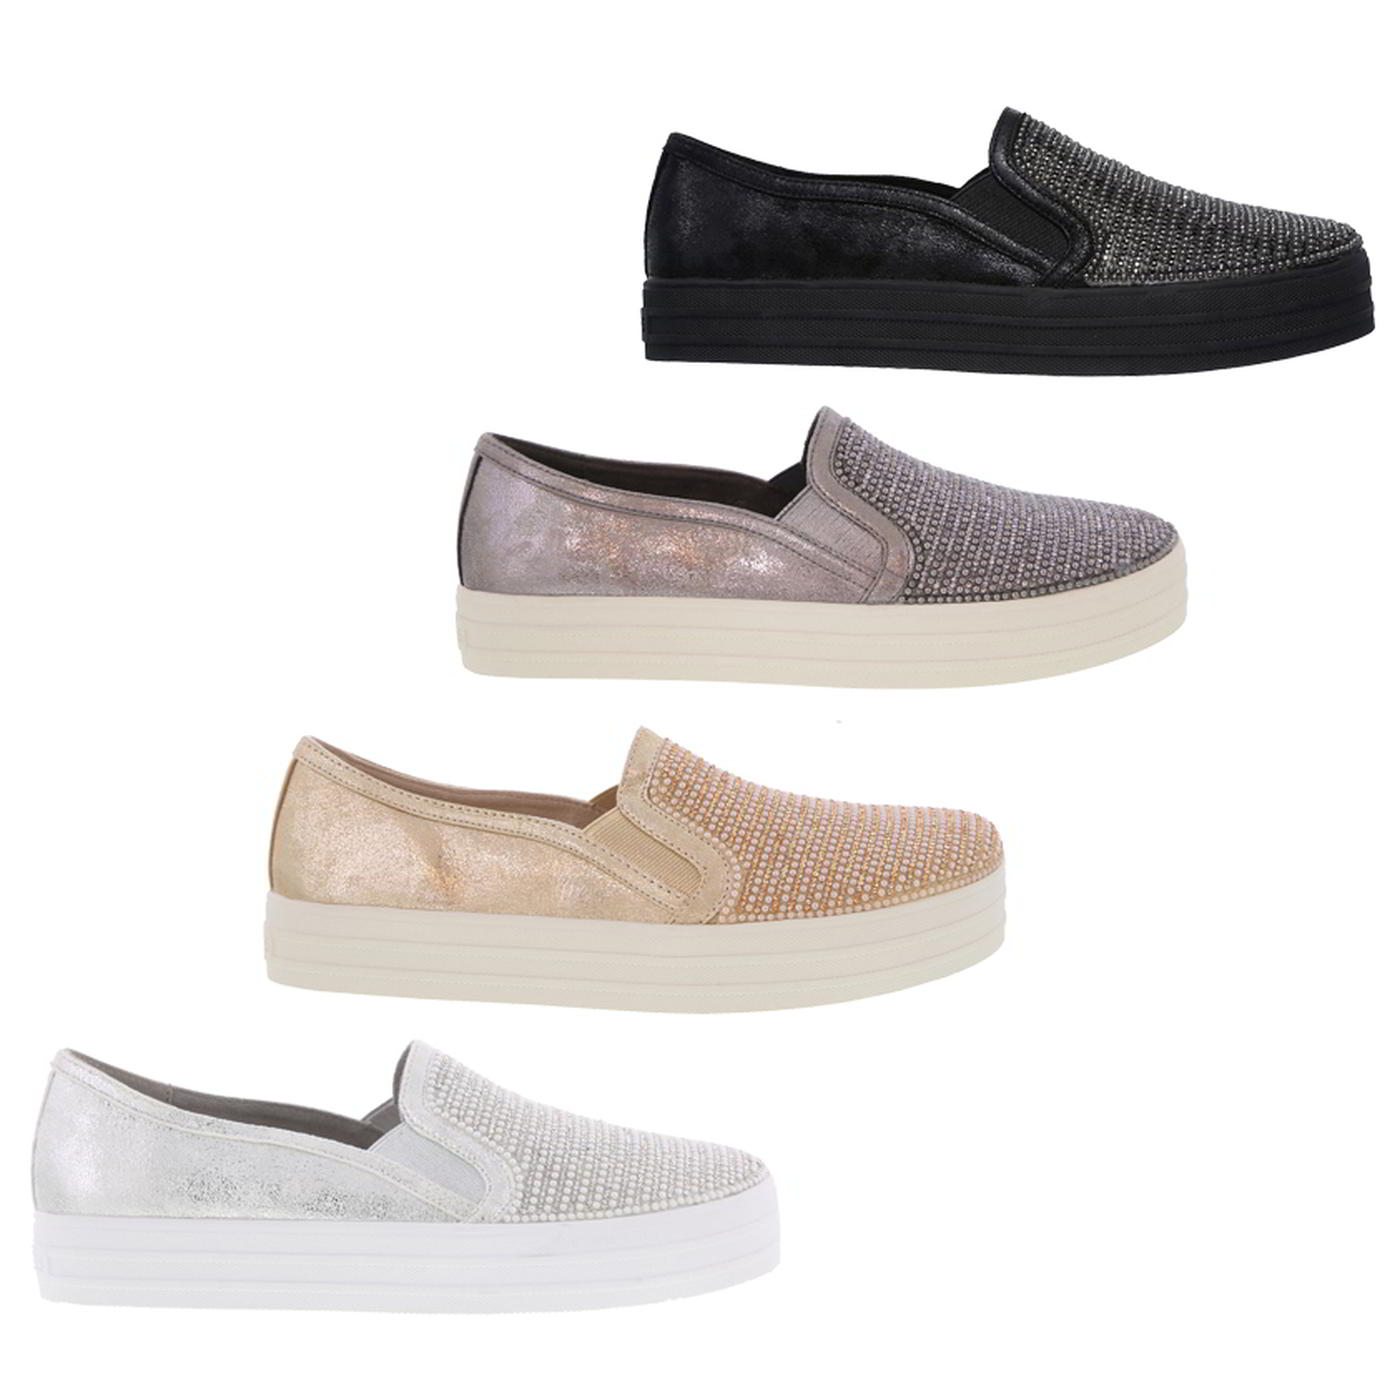 a4e89ea6aef9 Details about Skechers Double Up Shiny Dancer Womens Ladies Slip On Chunky  Trainers Shoes